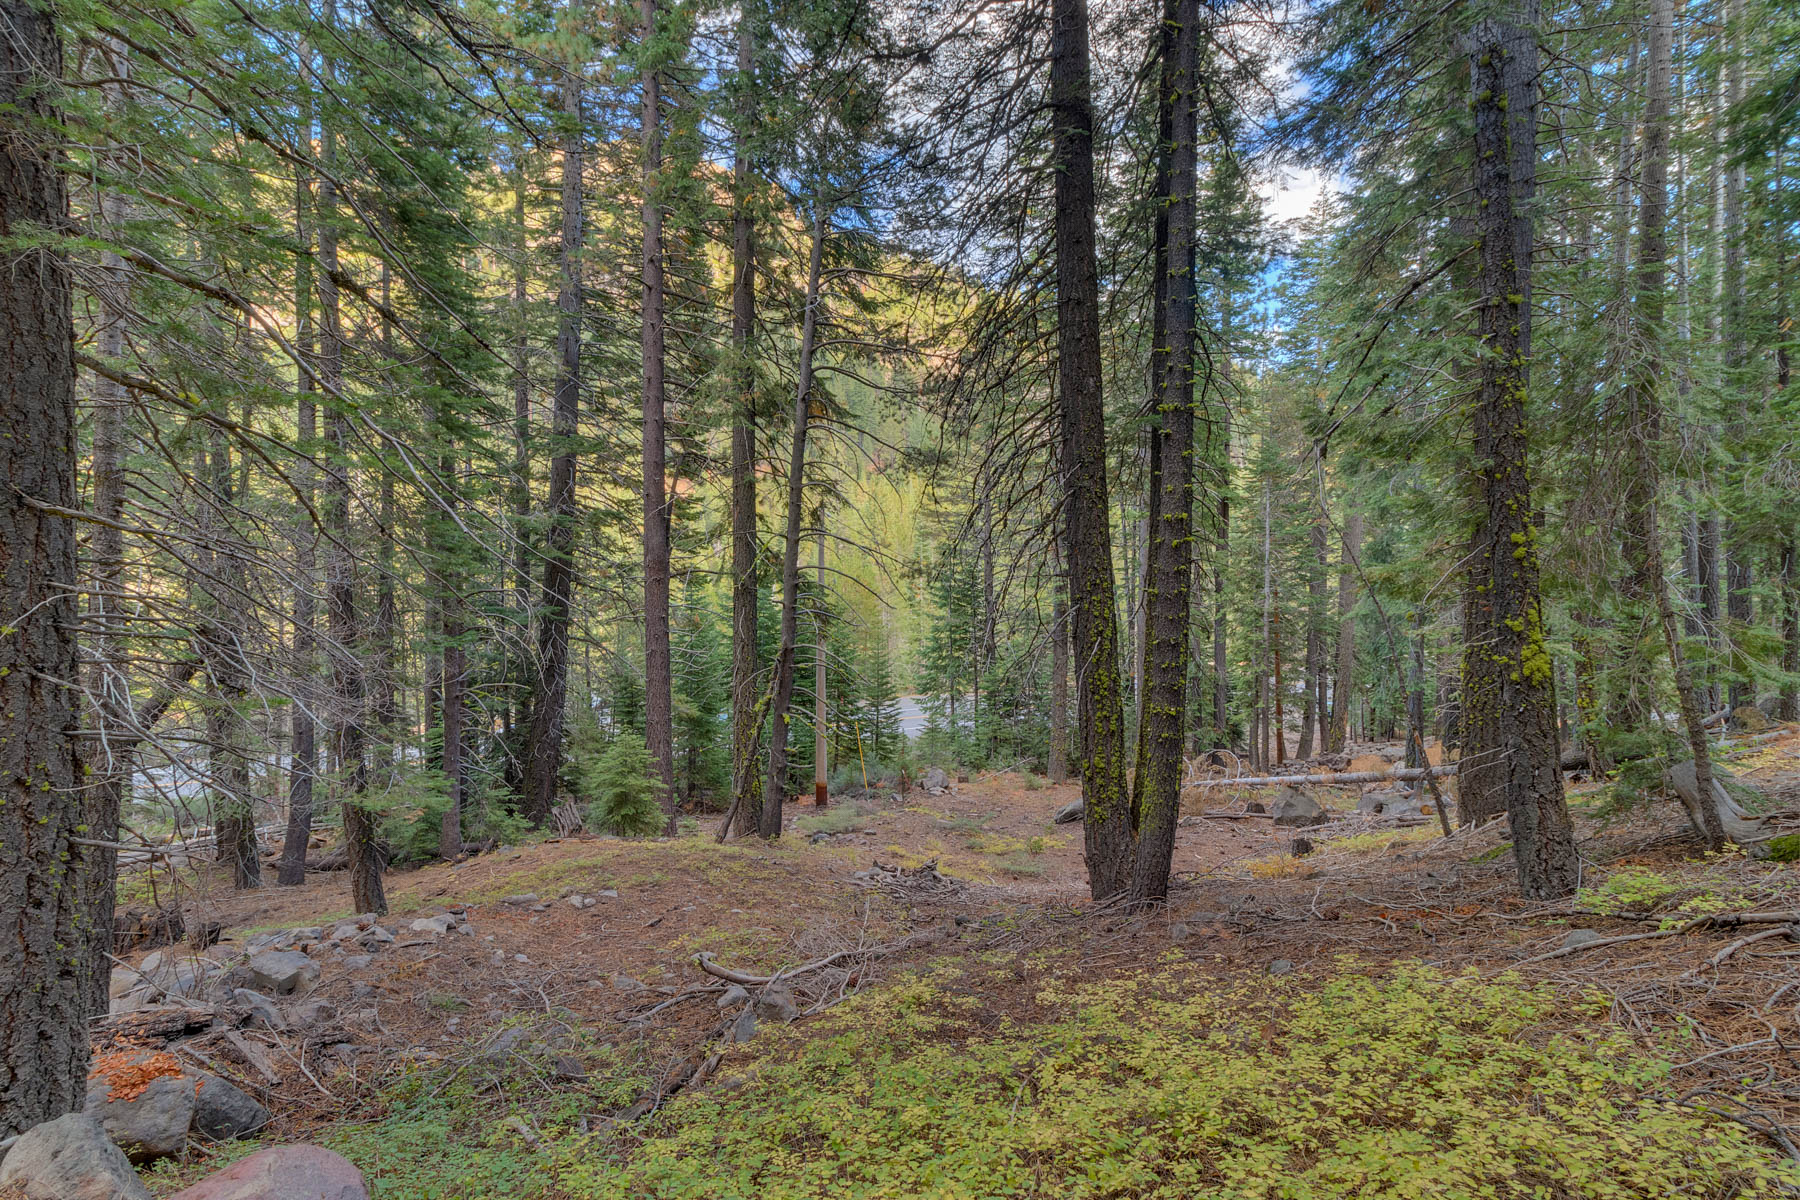 Additional photo for property listing at 7595 River Road, Truckee, CA 96161 7595 River Road Truckee, California 96161 United States